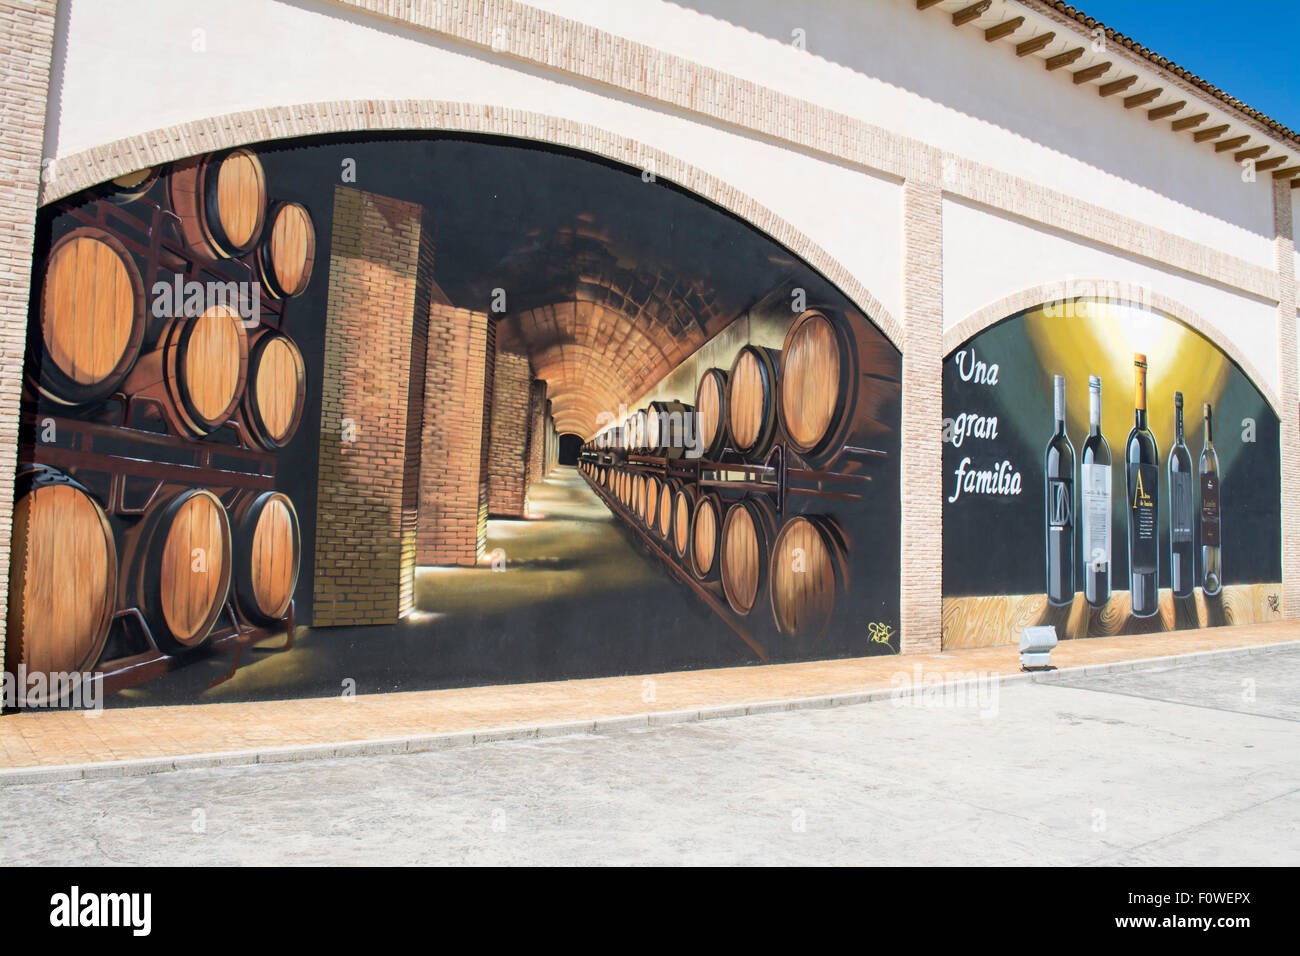 Painting at the entrance of the Luzon Bodega, Jumilla, Province of Murcia, Spain - Stock Image